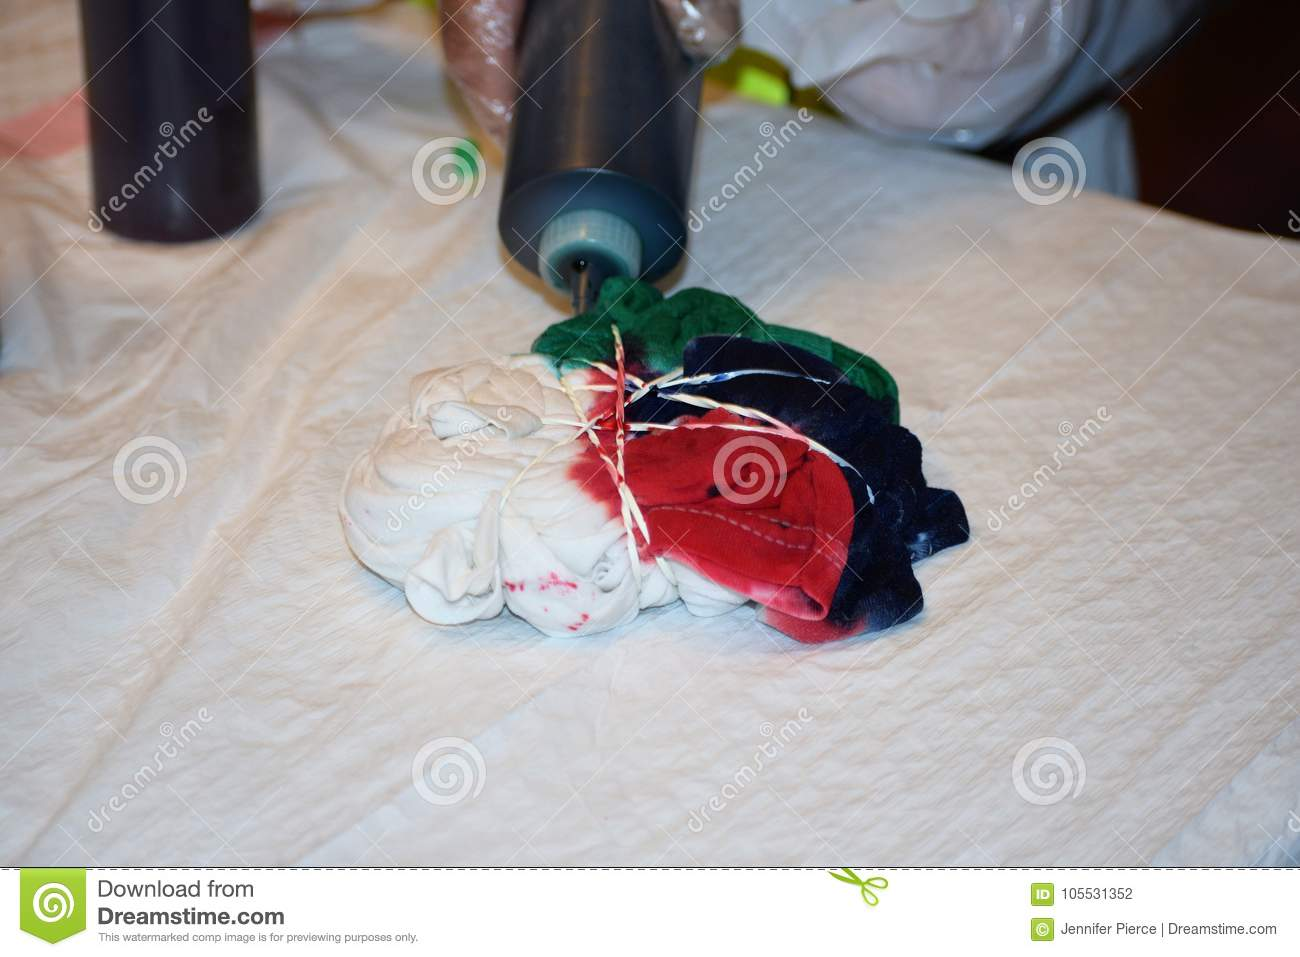 d75684c9 Making a tie-dye shirt stock photo. Image of dyed, dress - 105531352